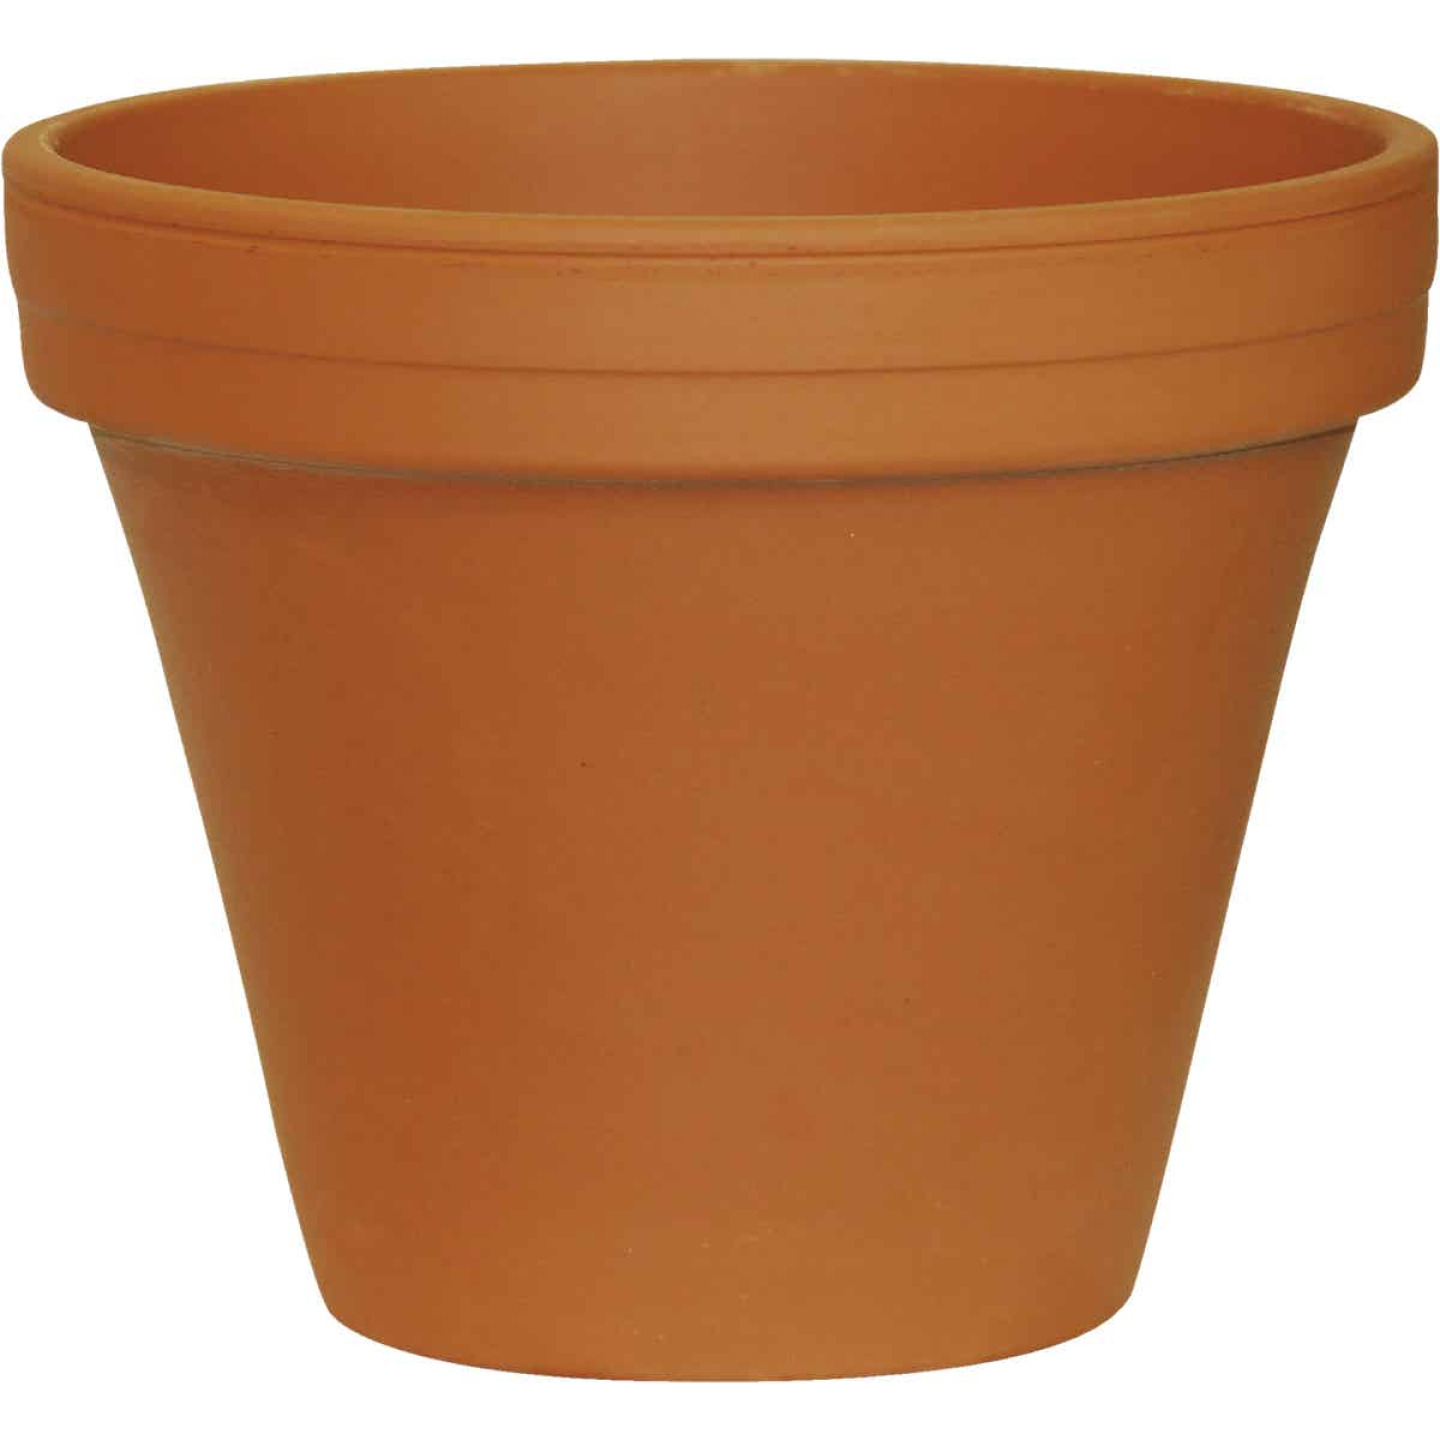 Ceramo 5-1/4 In. H. x 6 In. Dia. Terracotta Clay Standard Flower Pot Image 1